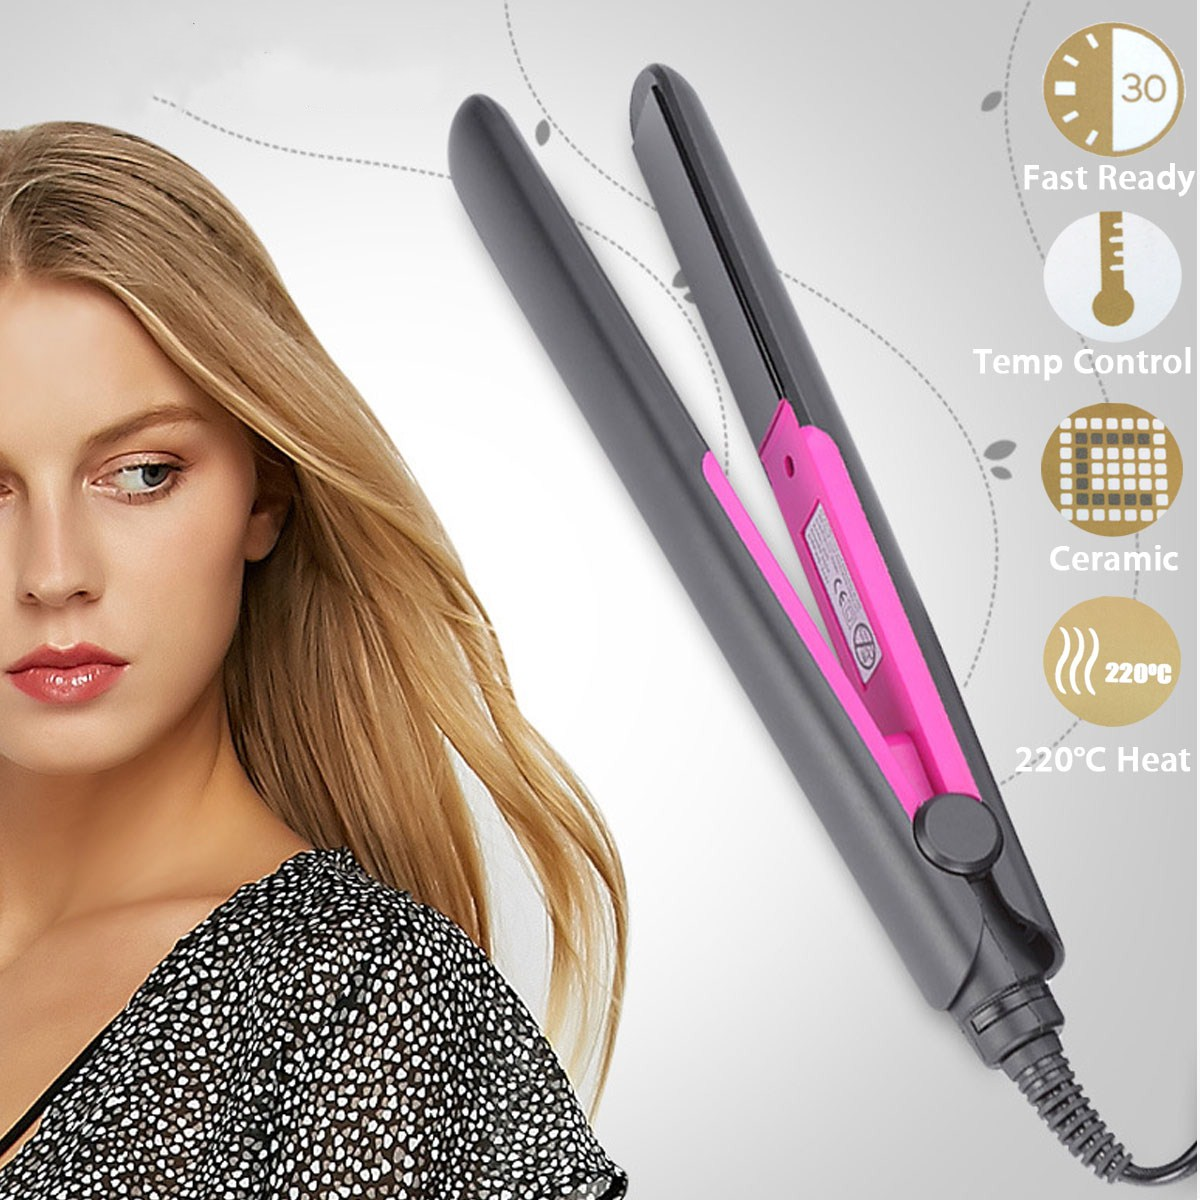 Fast Heating Flat Iron Straightening Irons Styling Tools Professional Ceramic Tourmaline Plate Perm Hair Straightener